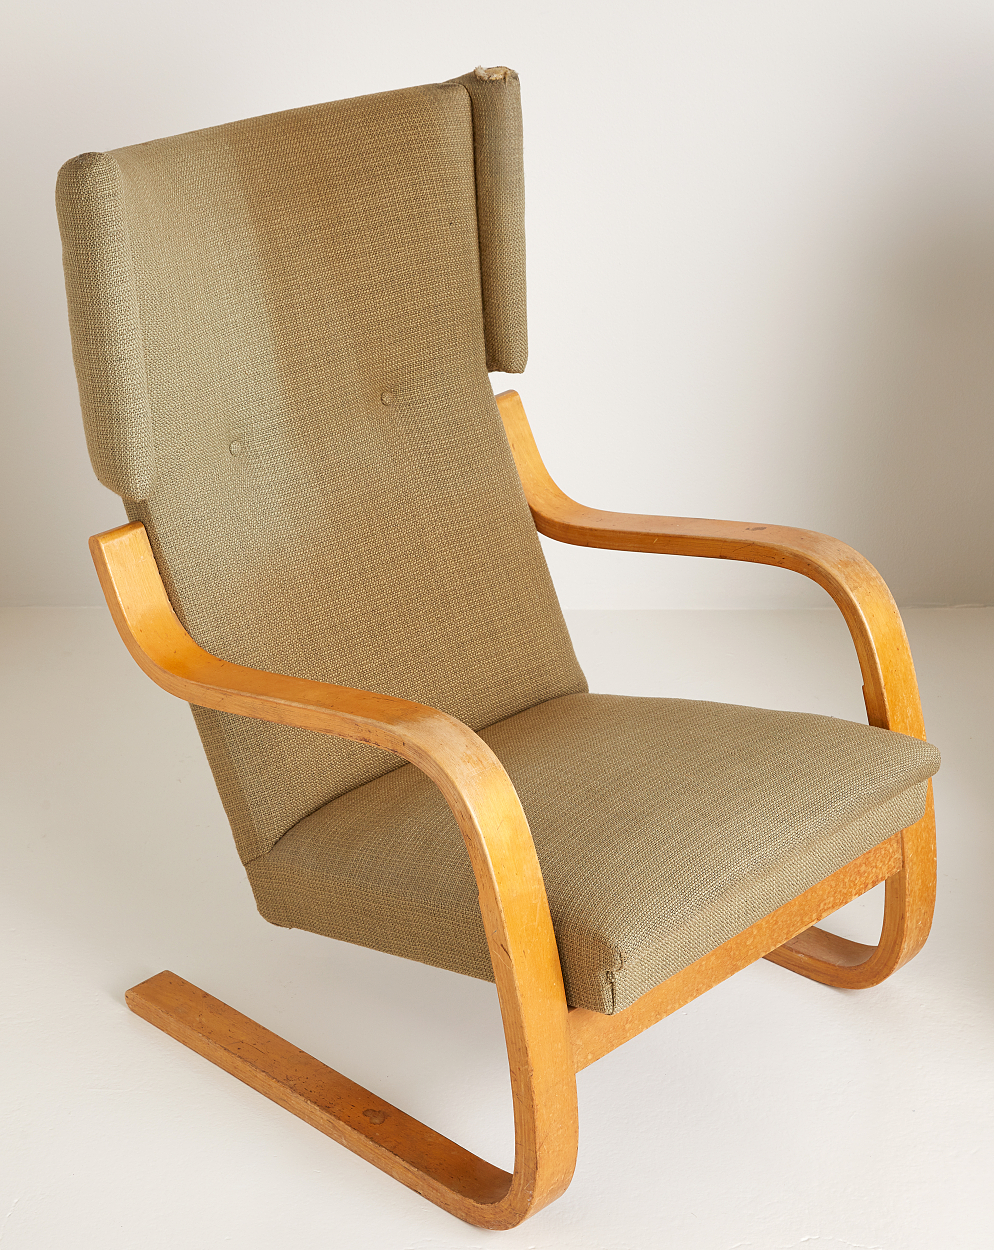 A pair of Alvar Aalto easy chairs